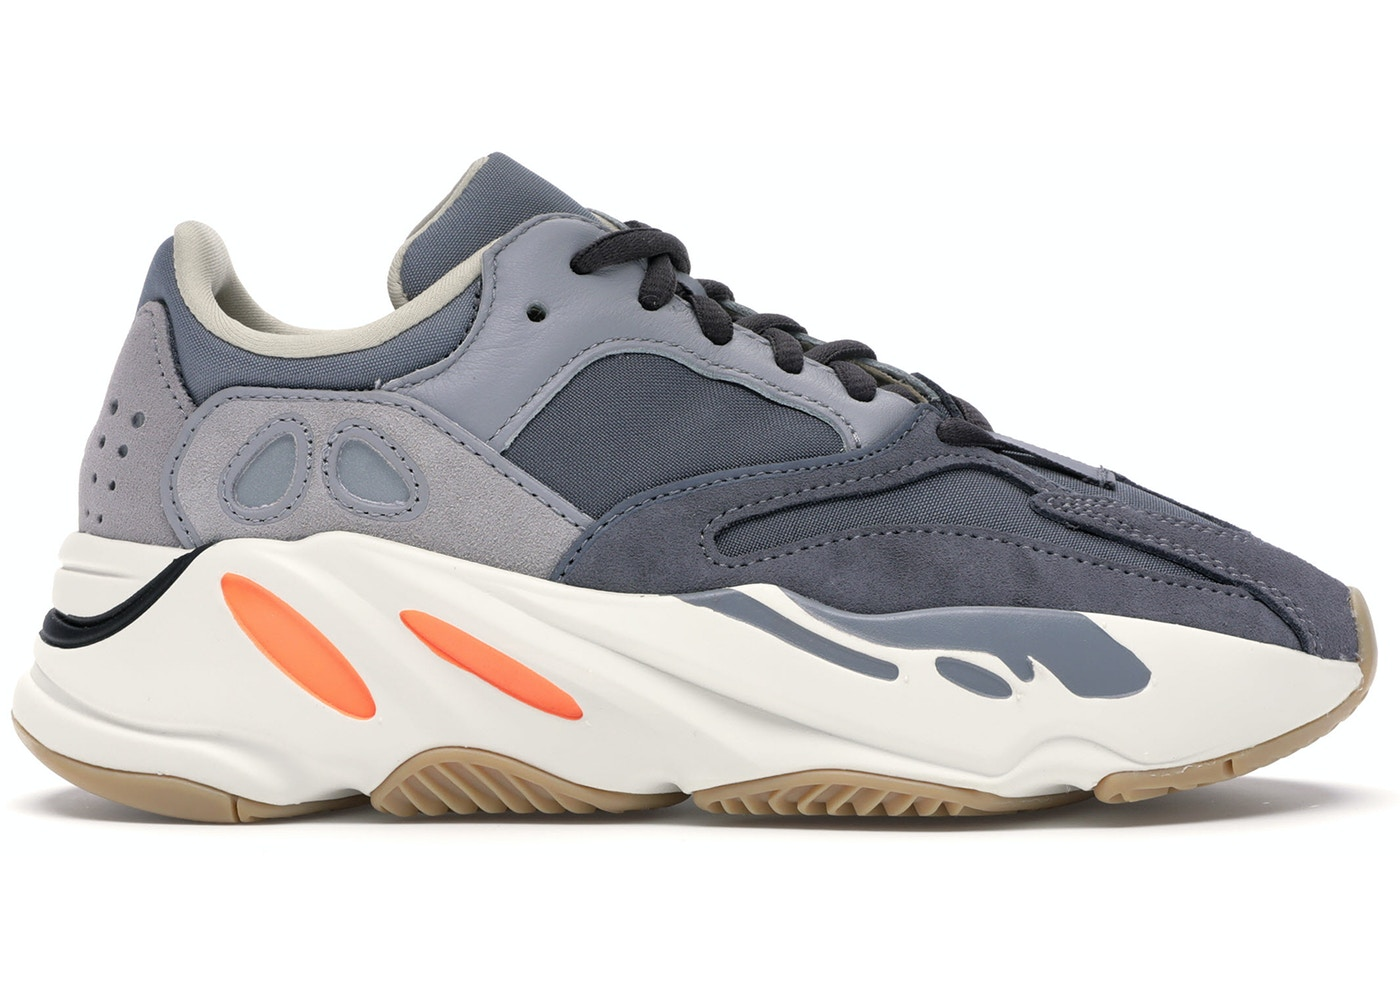 best website 2a6ed c28bc adidas Yeezy Boost 700 Magnet